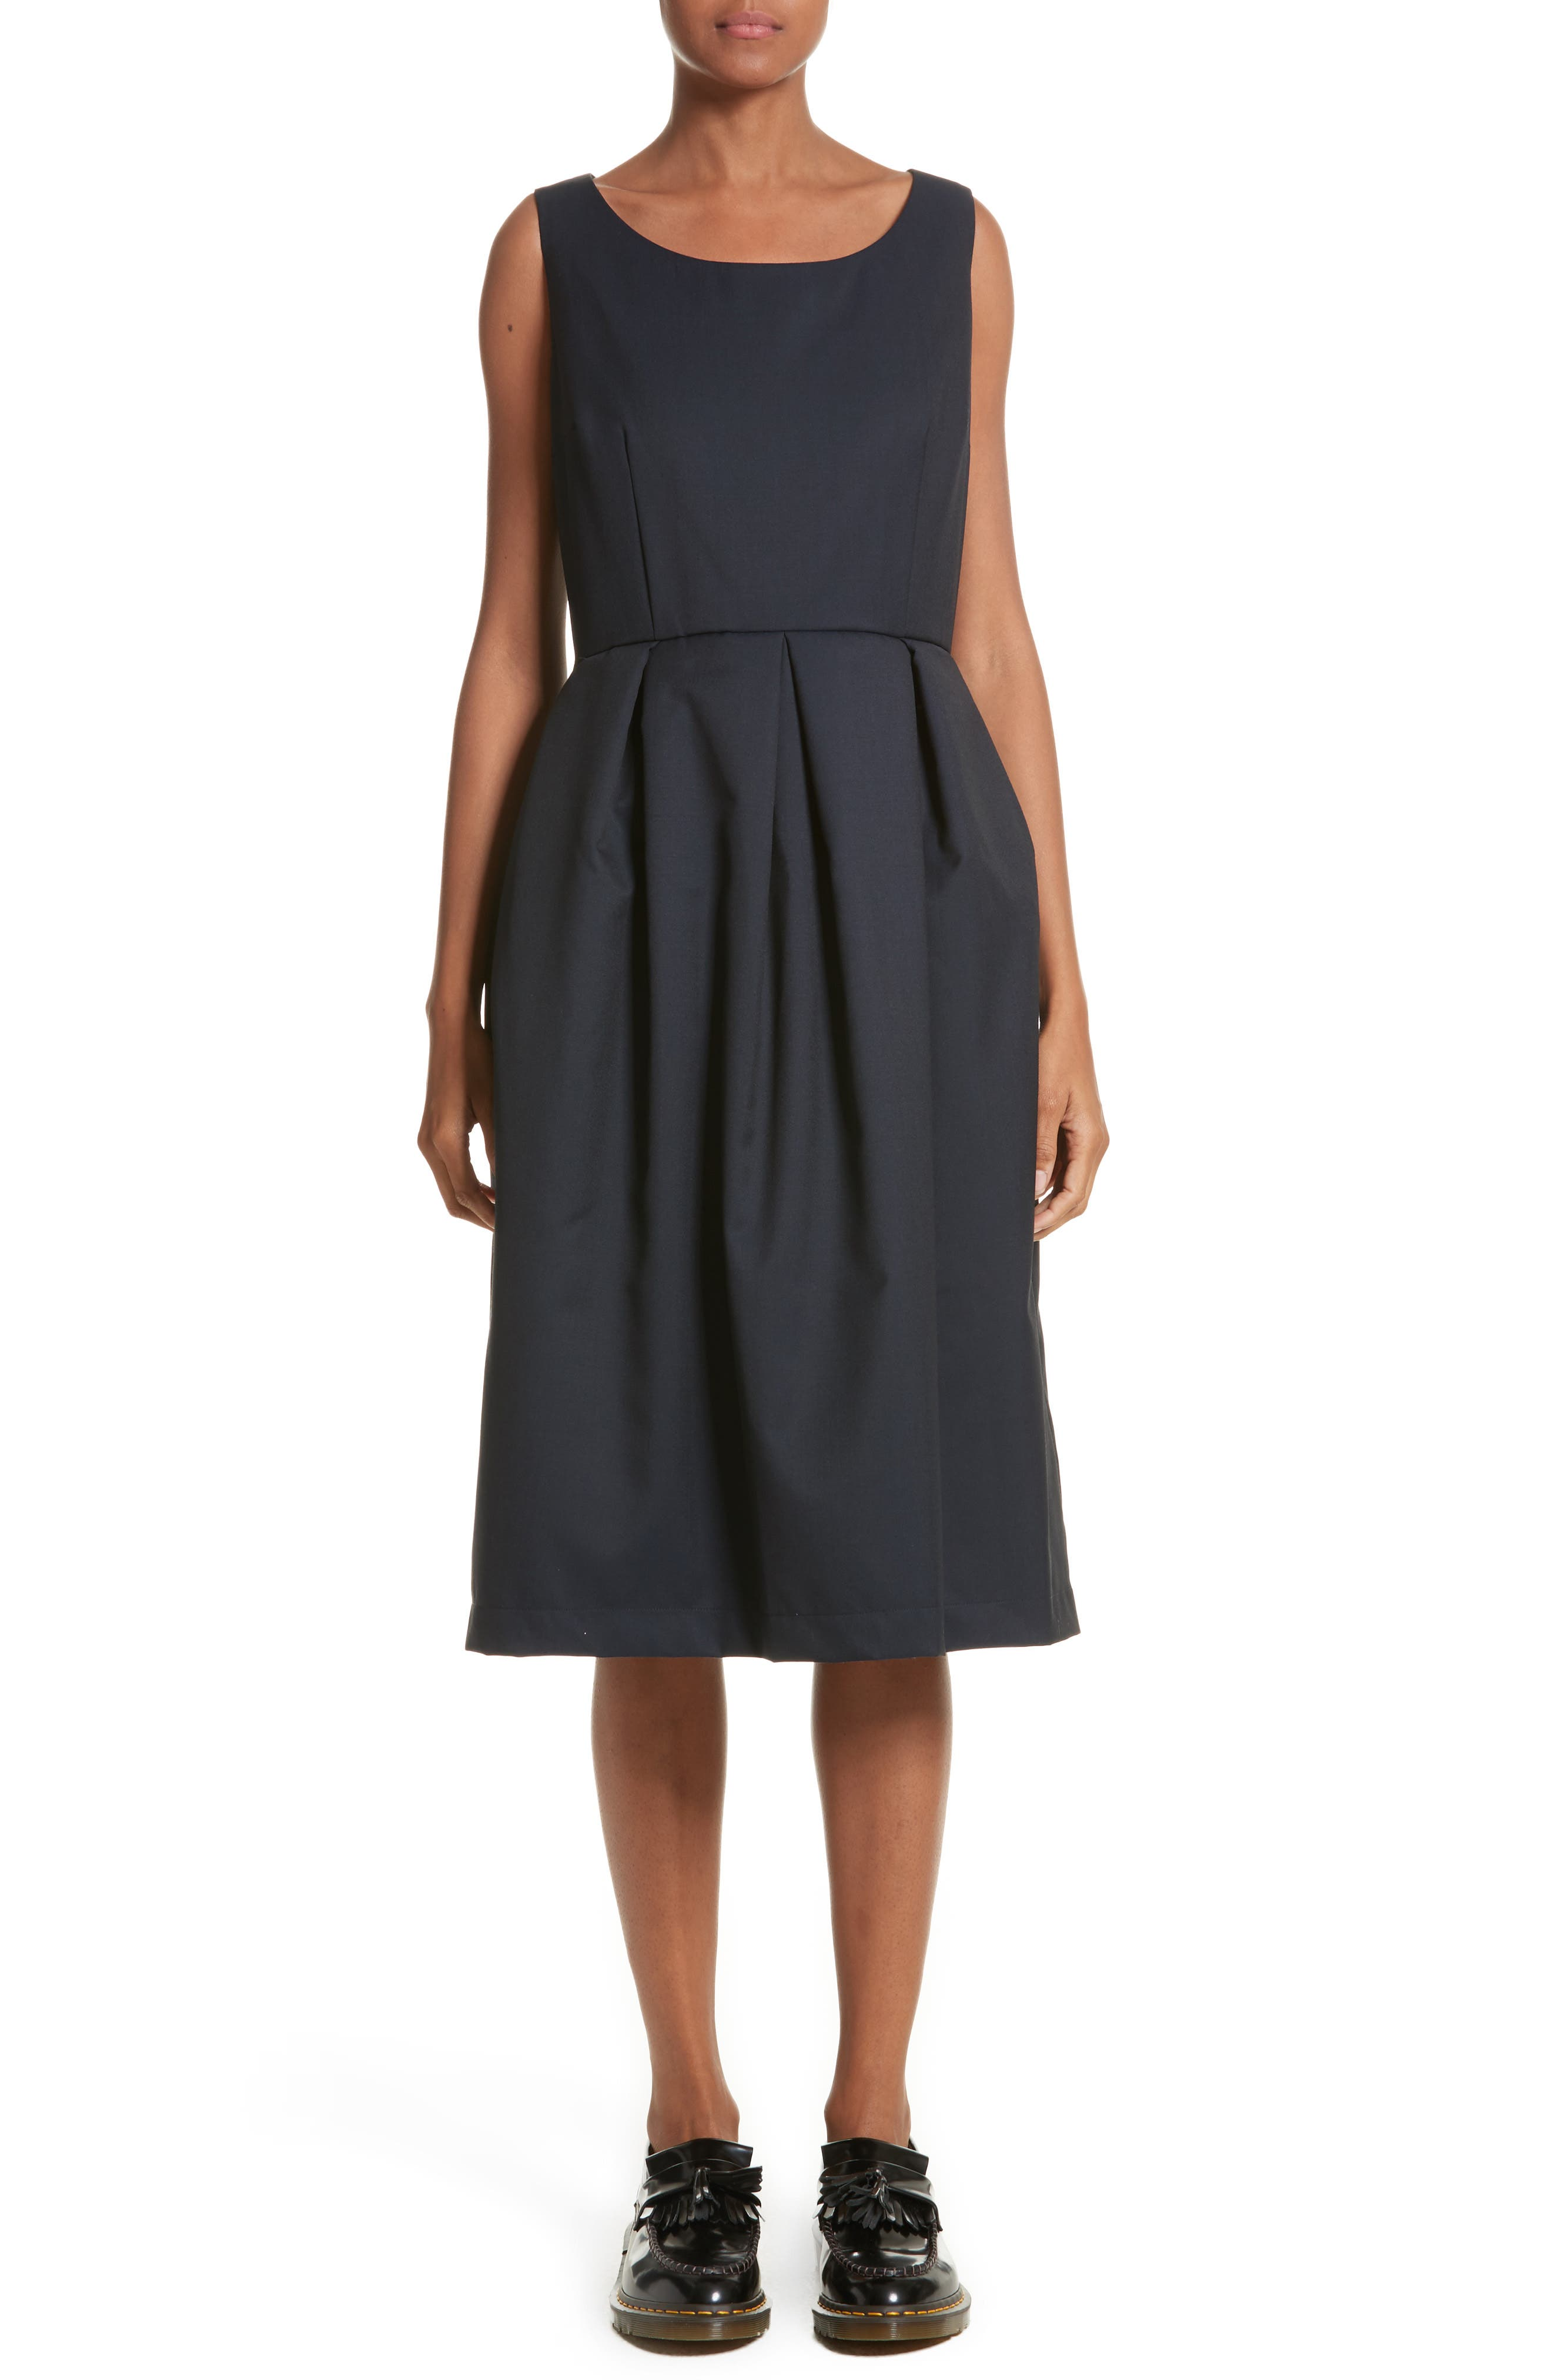 Comme de Garçons Sleeveless Fit & Flare Dress